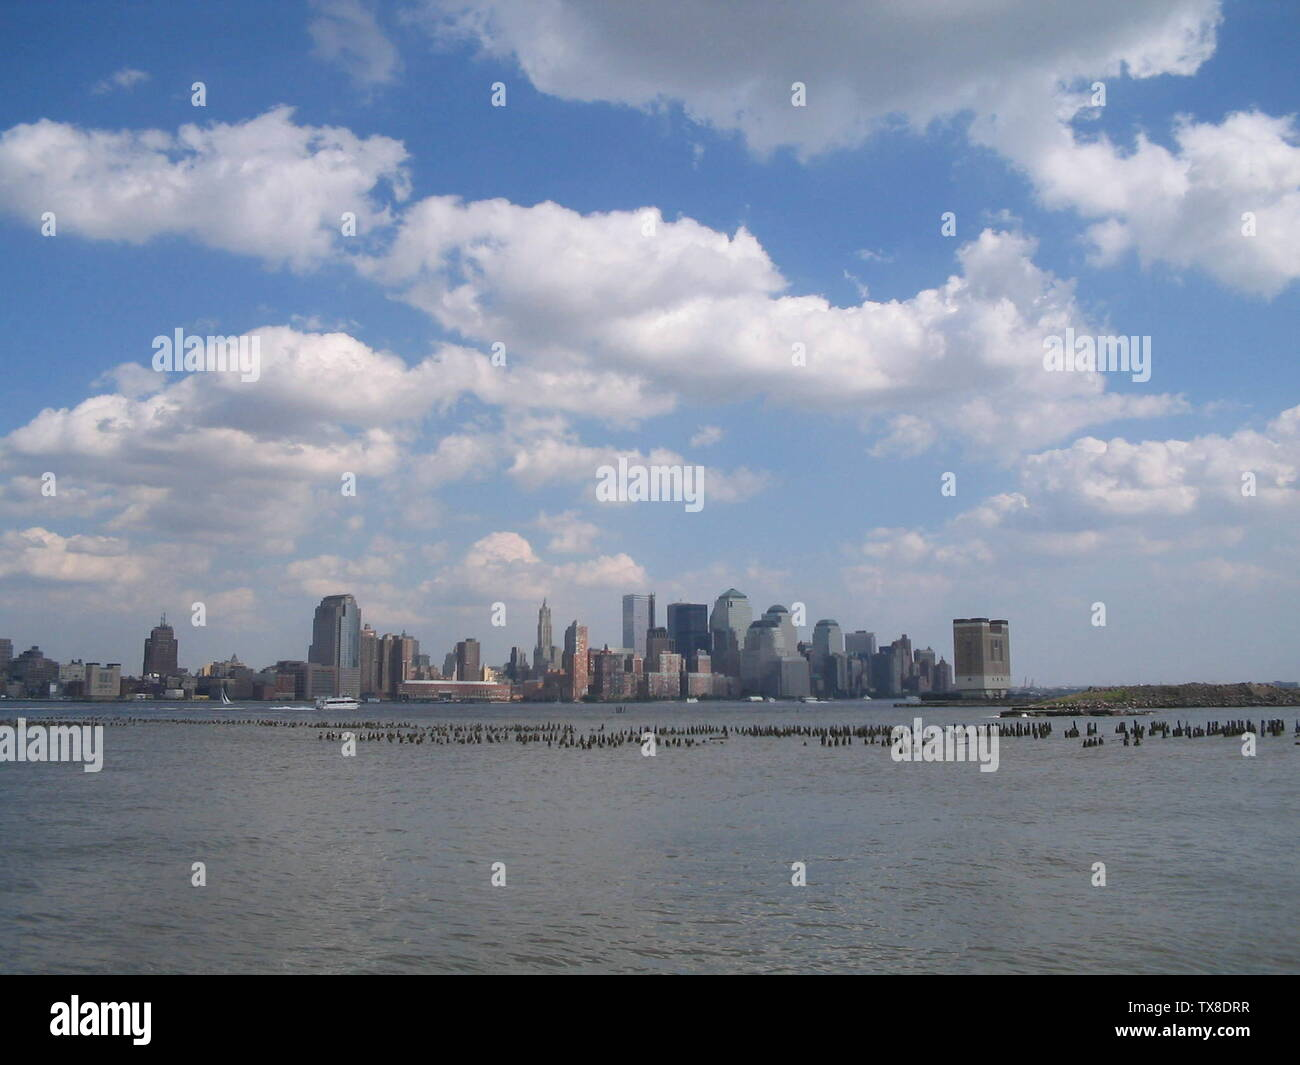 """English: The Lower Manhattan skyline as viewed from Hoboken.  The brick structure rising out of the Hudson River is a ventilation structure for the Holland Tunnel. Photo by Matthew Jesuele.; 18 June 2005 (original upload date); Transferred from en.wikipedia to Commons by Premeditated Chaos using CommonsHelper.; Vladtheinhaler at English Wikipedia; "" Stock Photo"